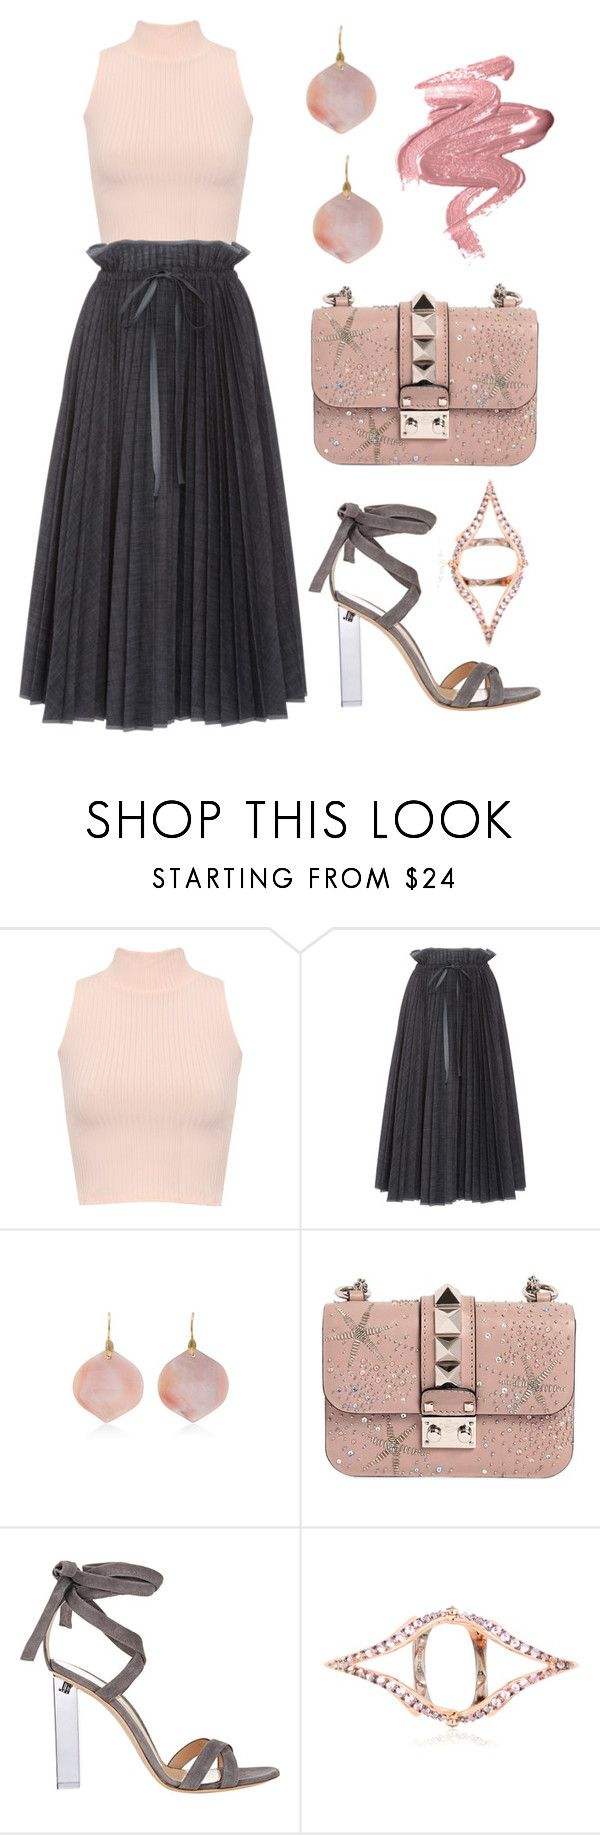 """""""holiday Ballerina"""" by dominosfalldown ❤ liked on Polyvore featuring WearAll, Dice Kayek, Annette Ferdinandsen, Valentino, Gianvito Rossi and Katie Rowland"""